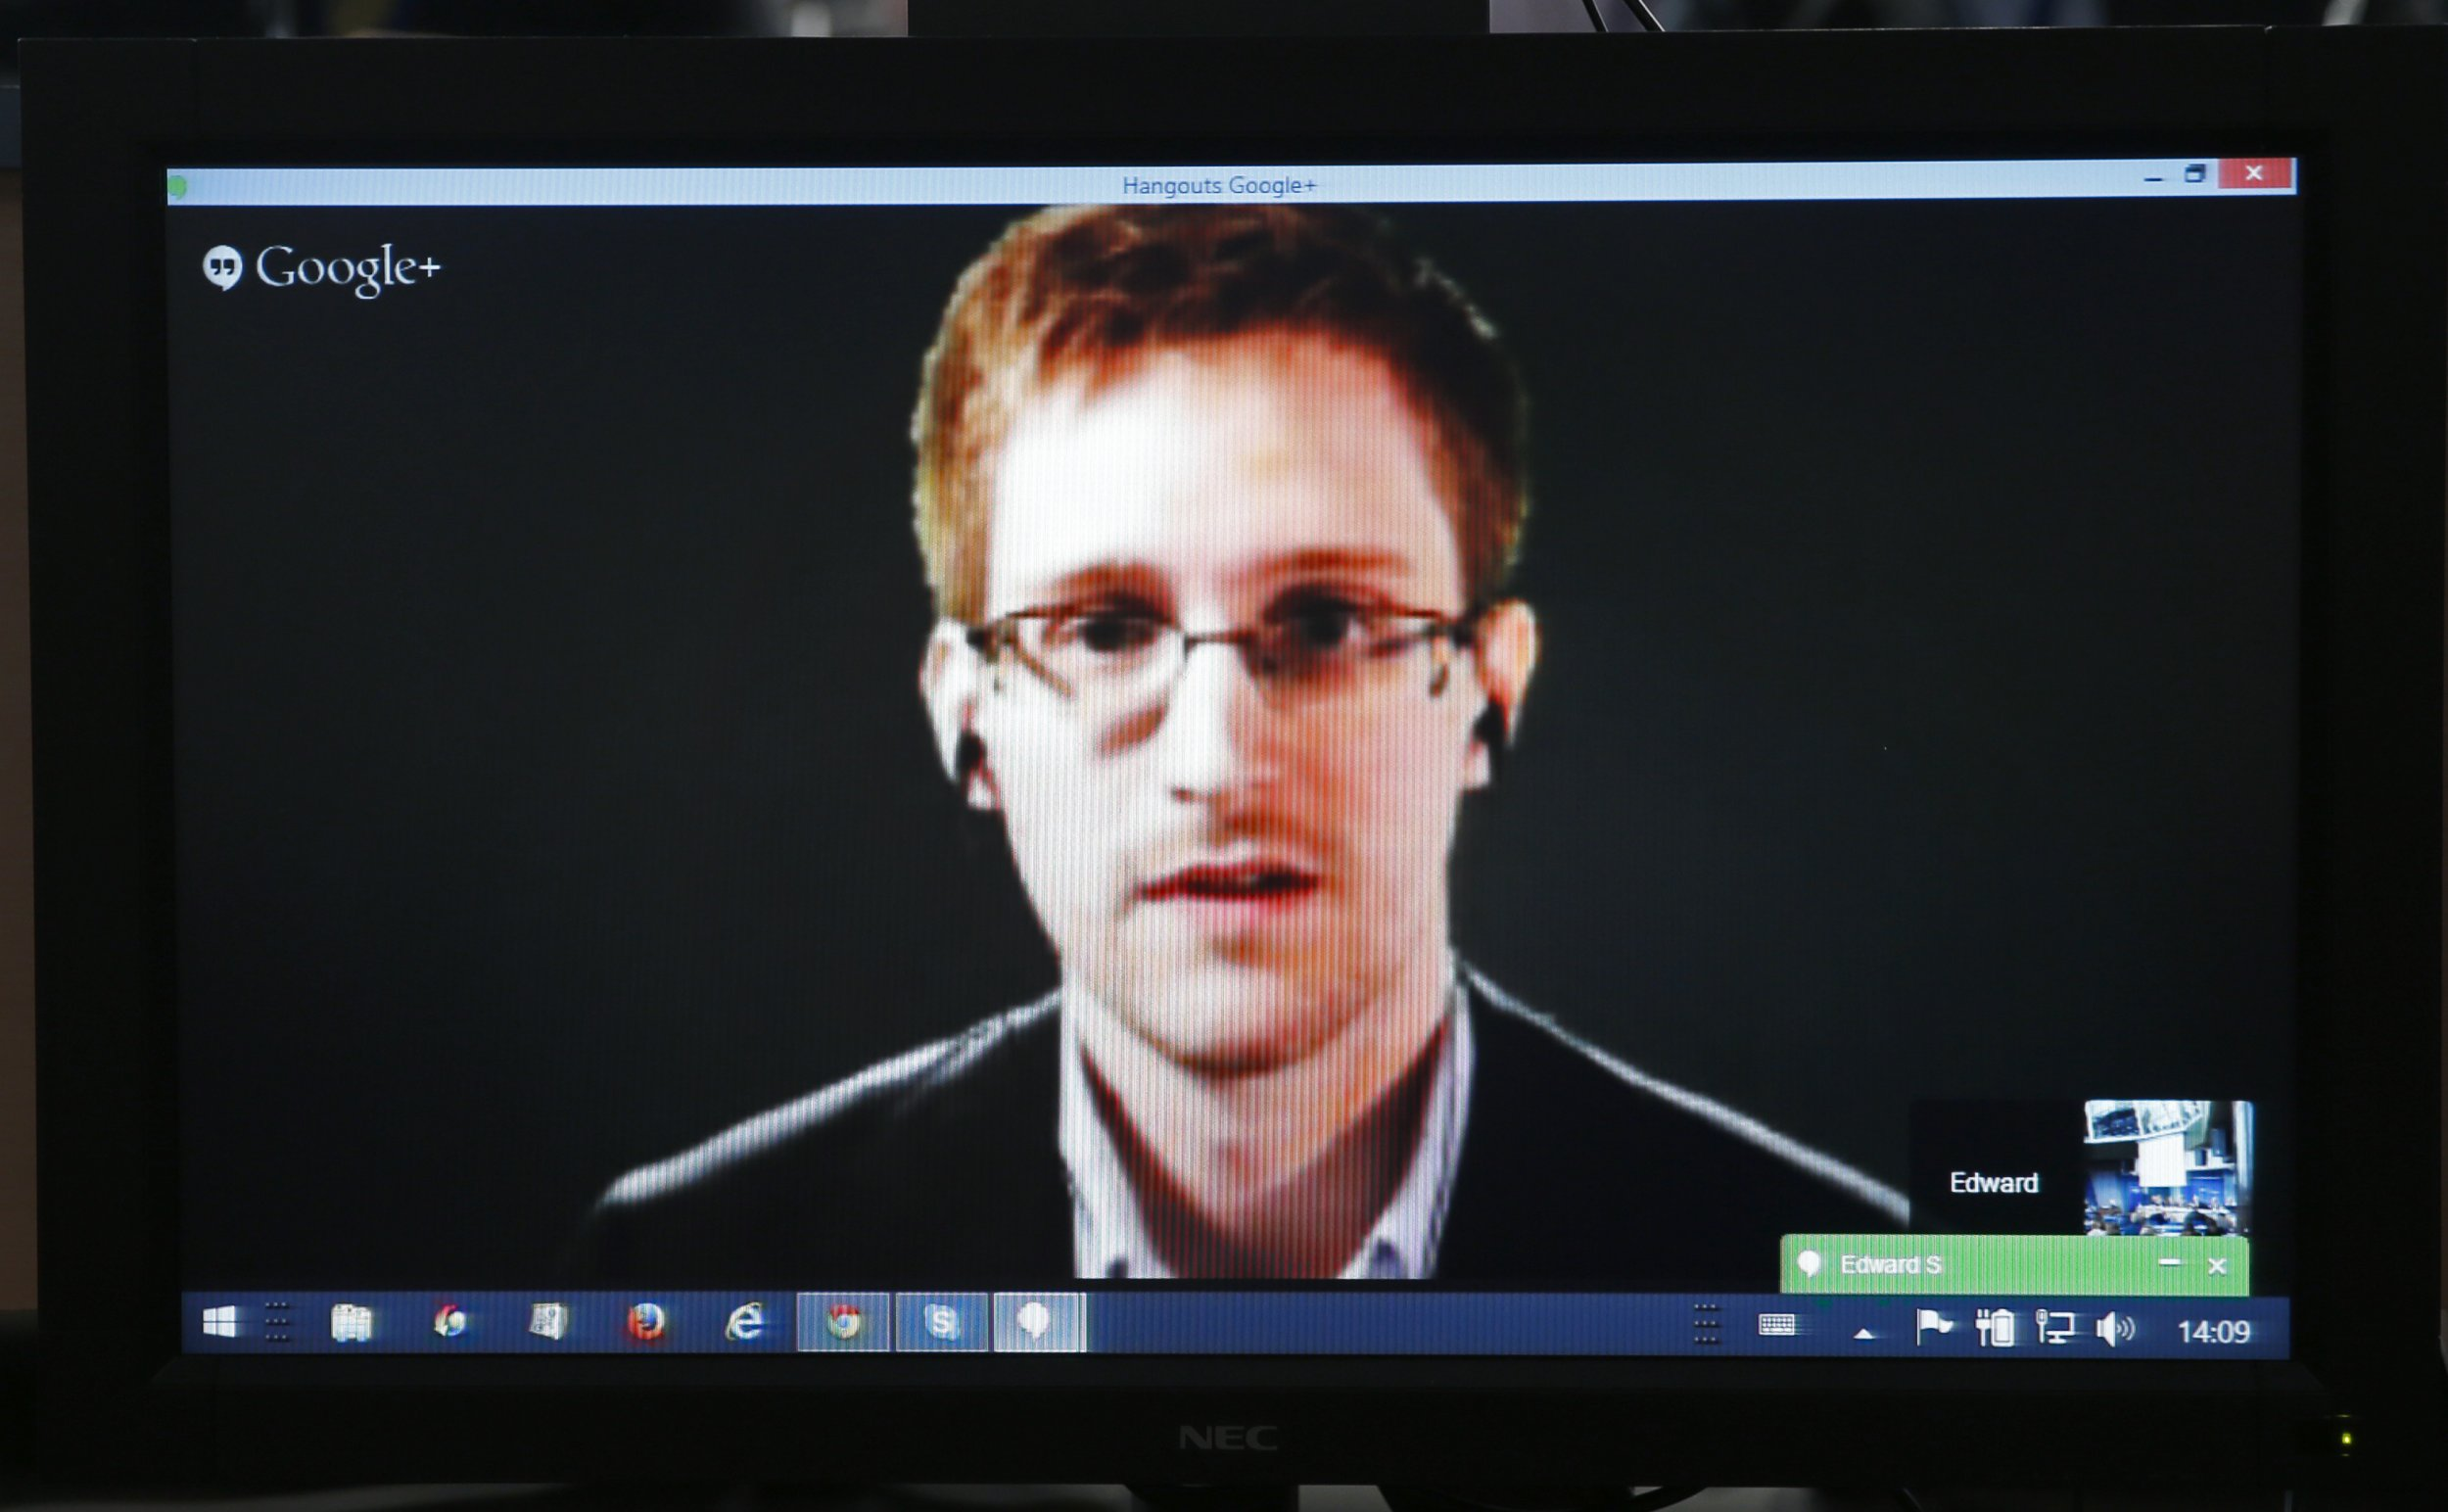 Edward Snowden appears on screen